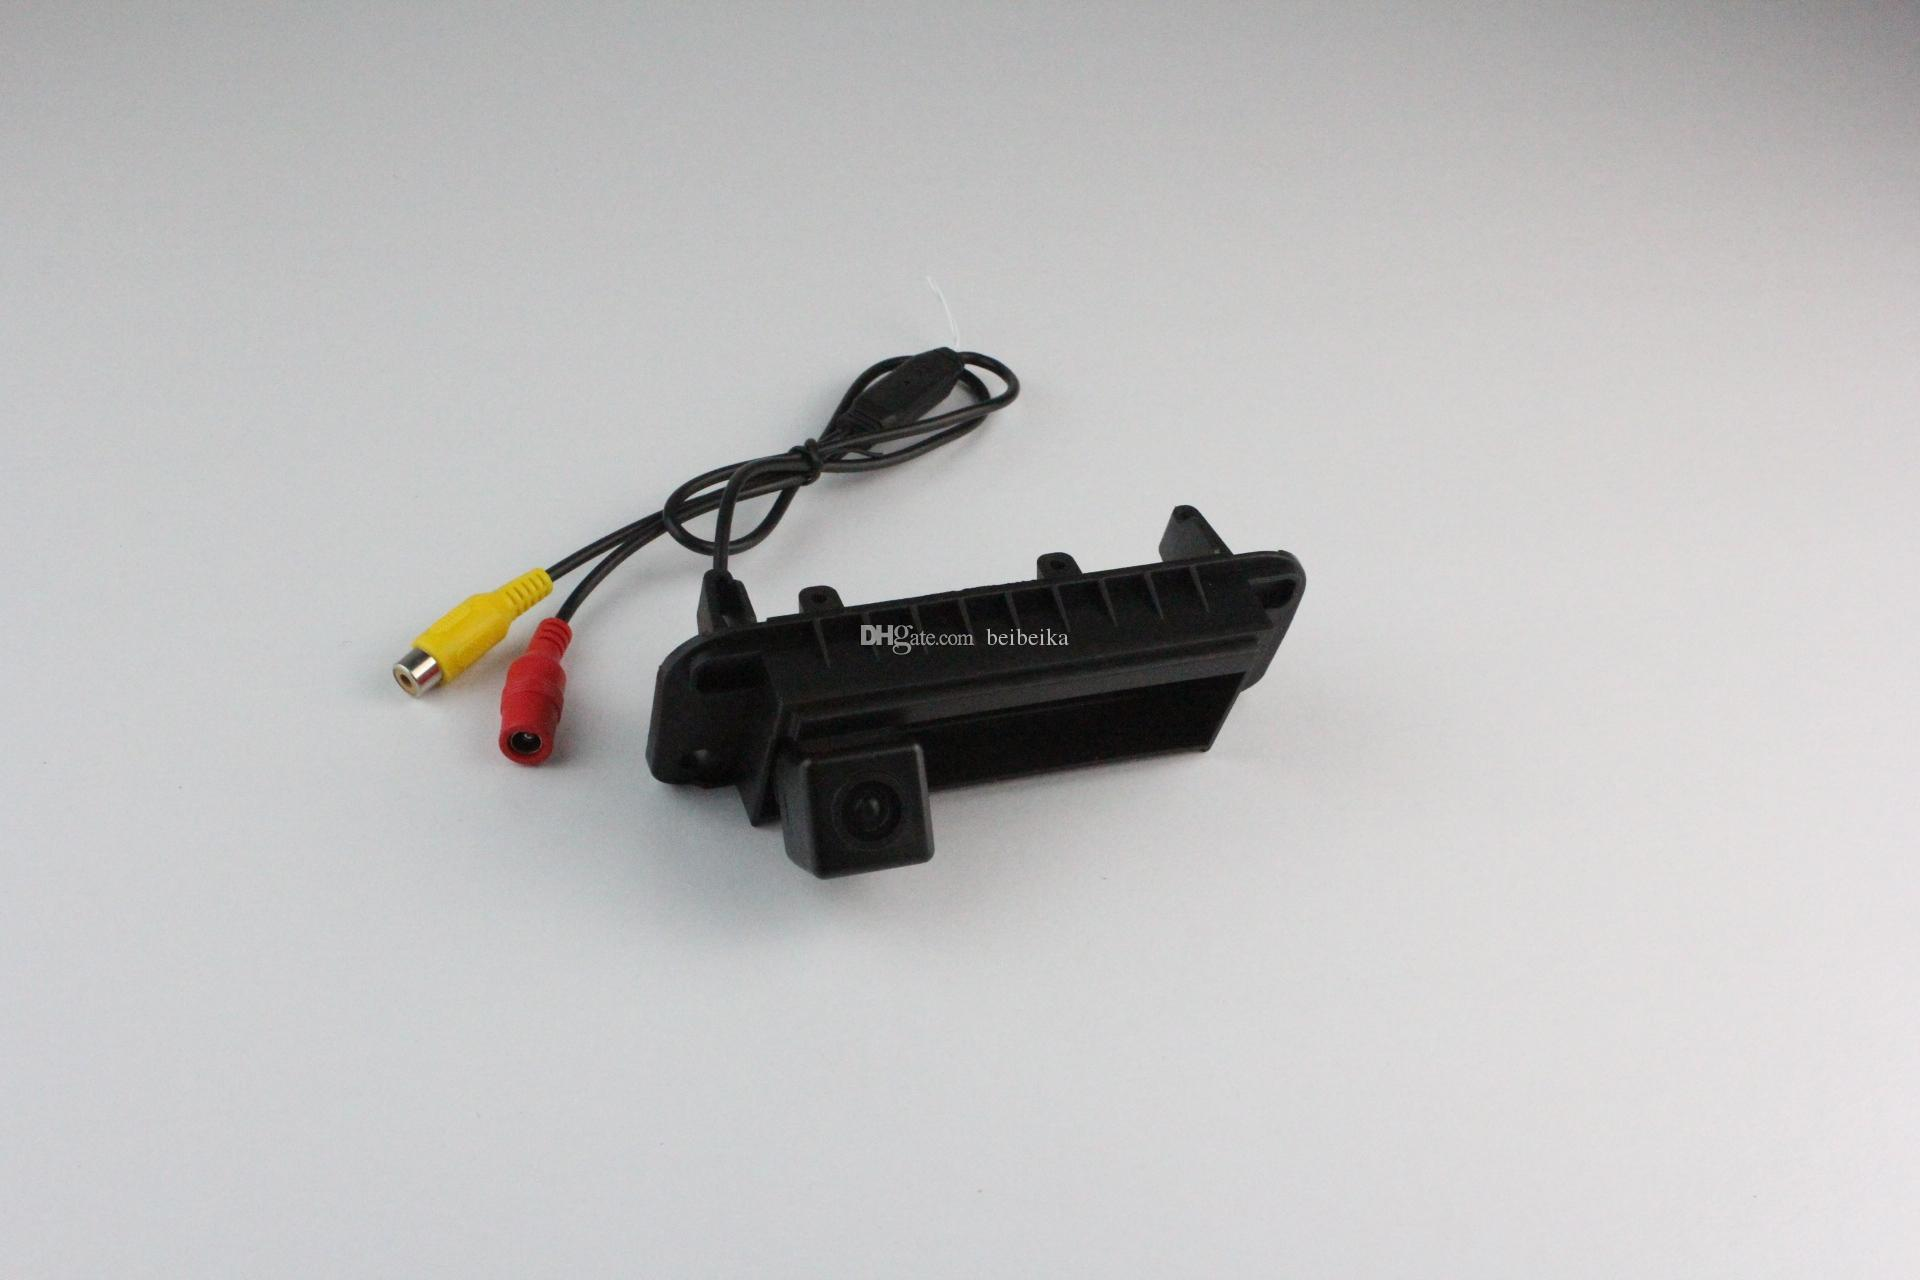 Car rear view camera for mercedes benz c class w205 w204 reverse car rear view camera for mercedes benz c class w205 w204 reverse camera hd ccd rca ntst pal trunk handle oem car rear view camera parking back up cheapraybanclubmaster Images